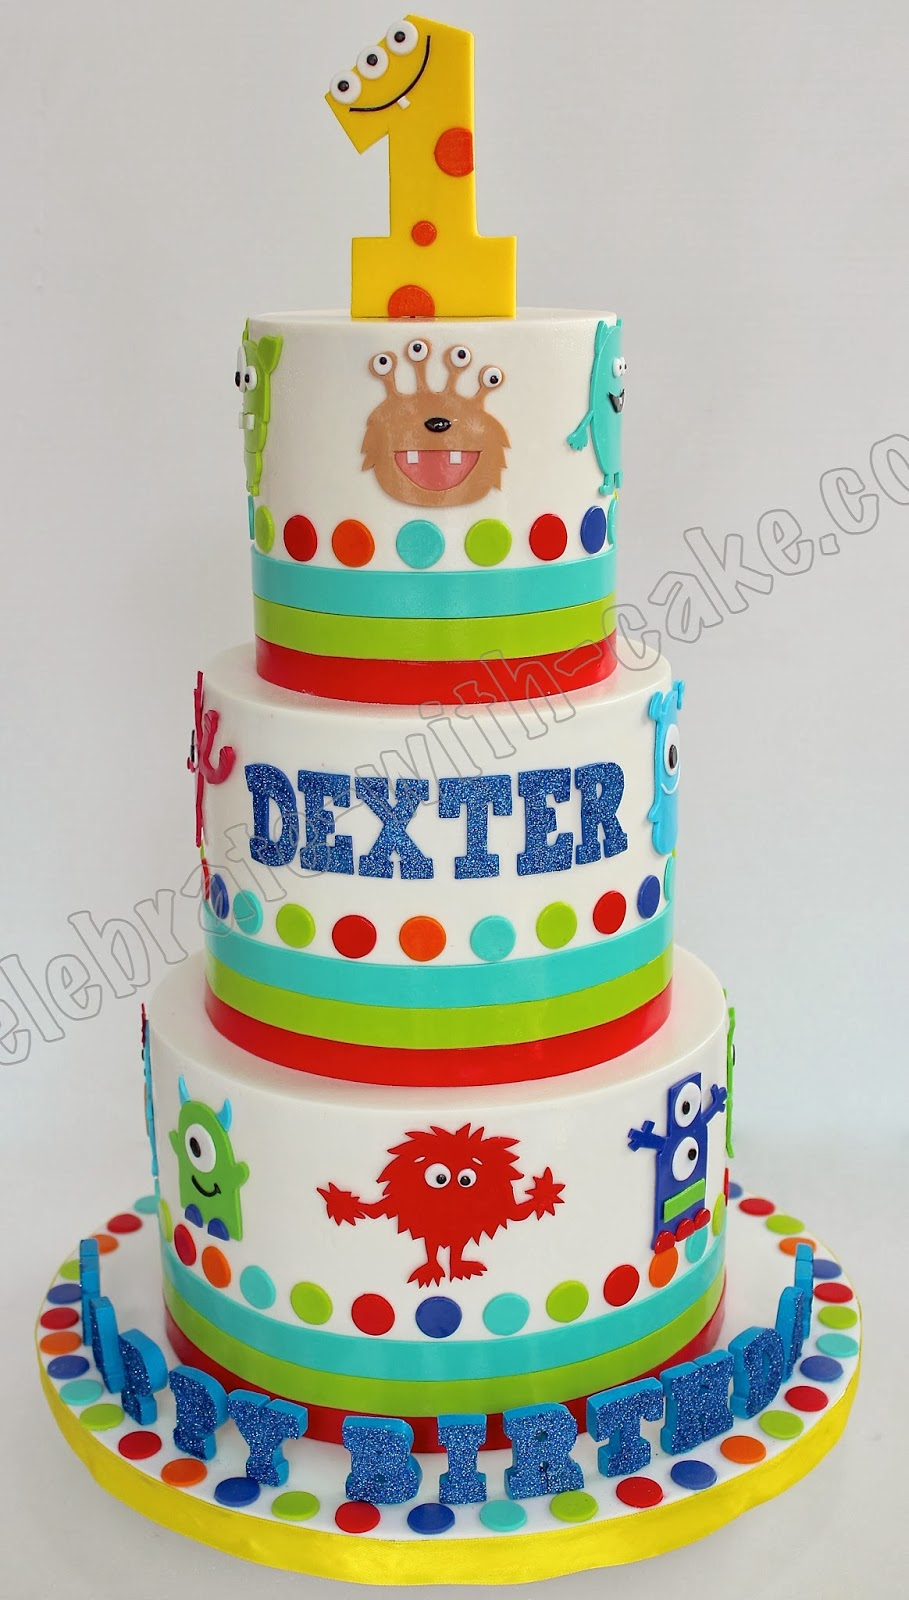 Celebrate With Cake Cute Monster 3 Tier 1st Birthday